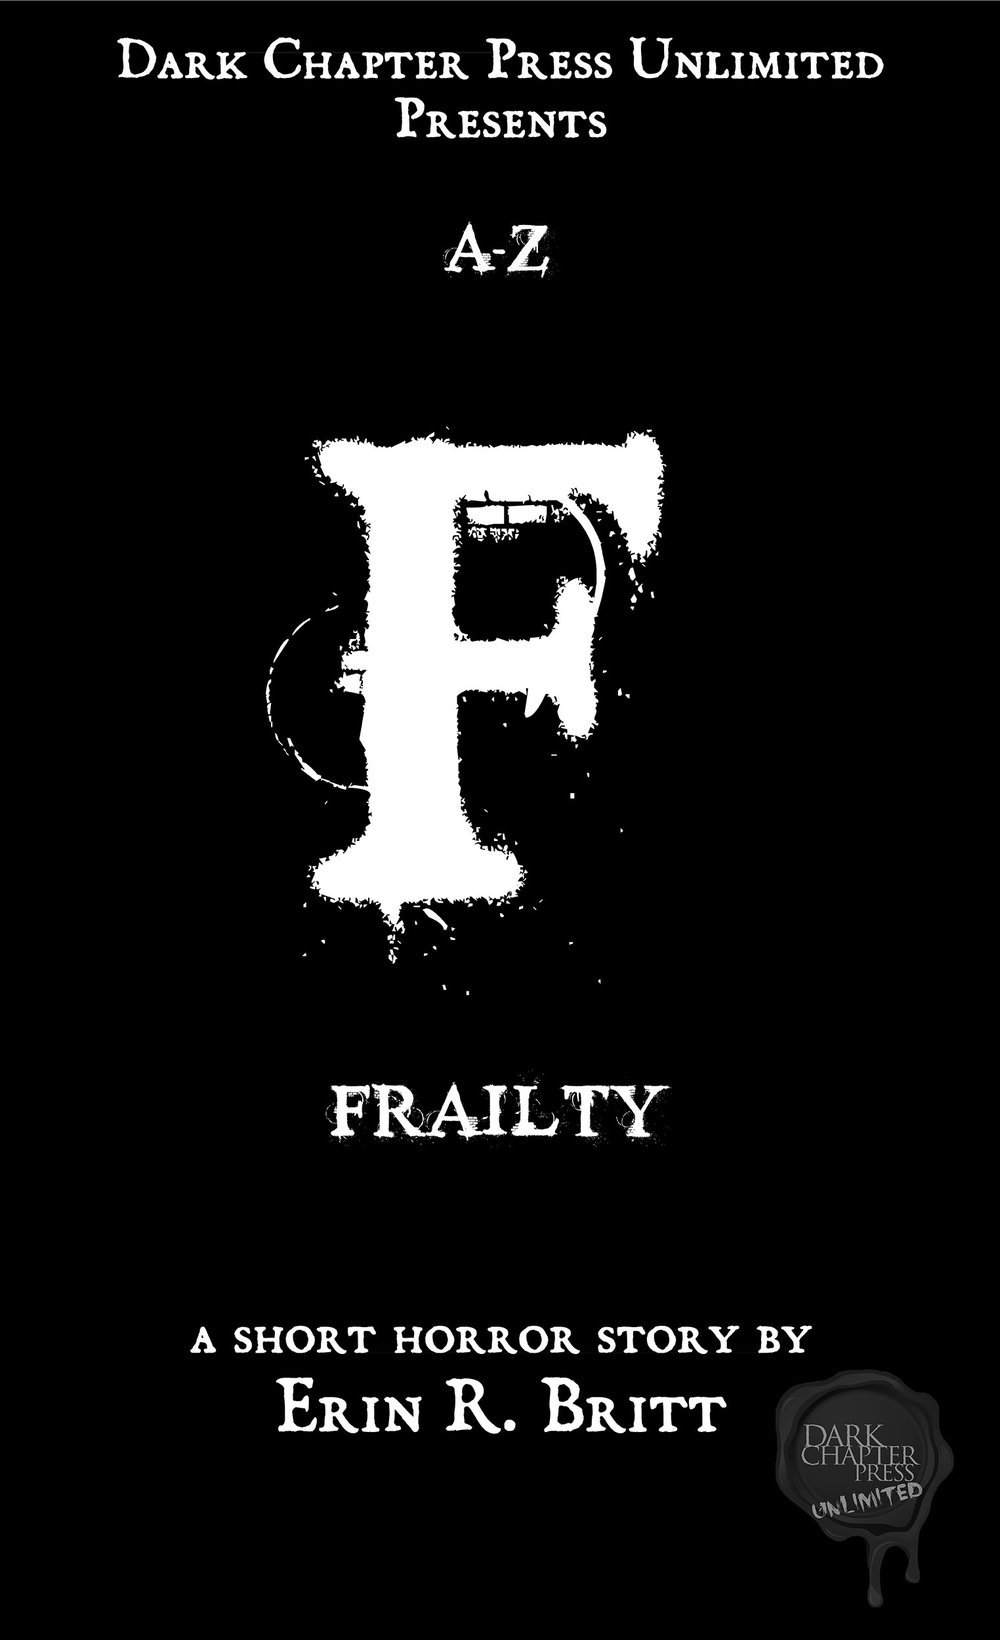 Frailty, by Erin R, Britt When Anita Lewis heads to the local supermarket, she is expecting nothing more than a routine shopping trip. However, the attention of a concerned police officer is about to change her life forever...